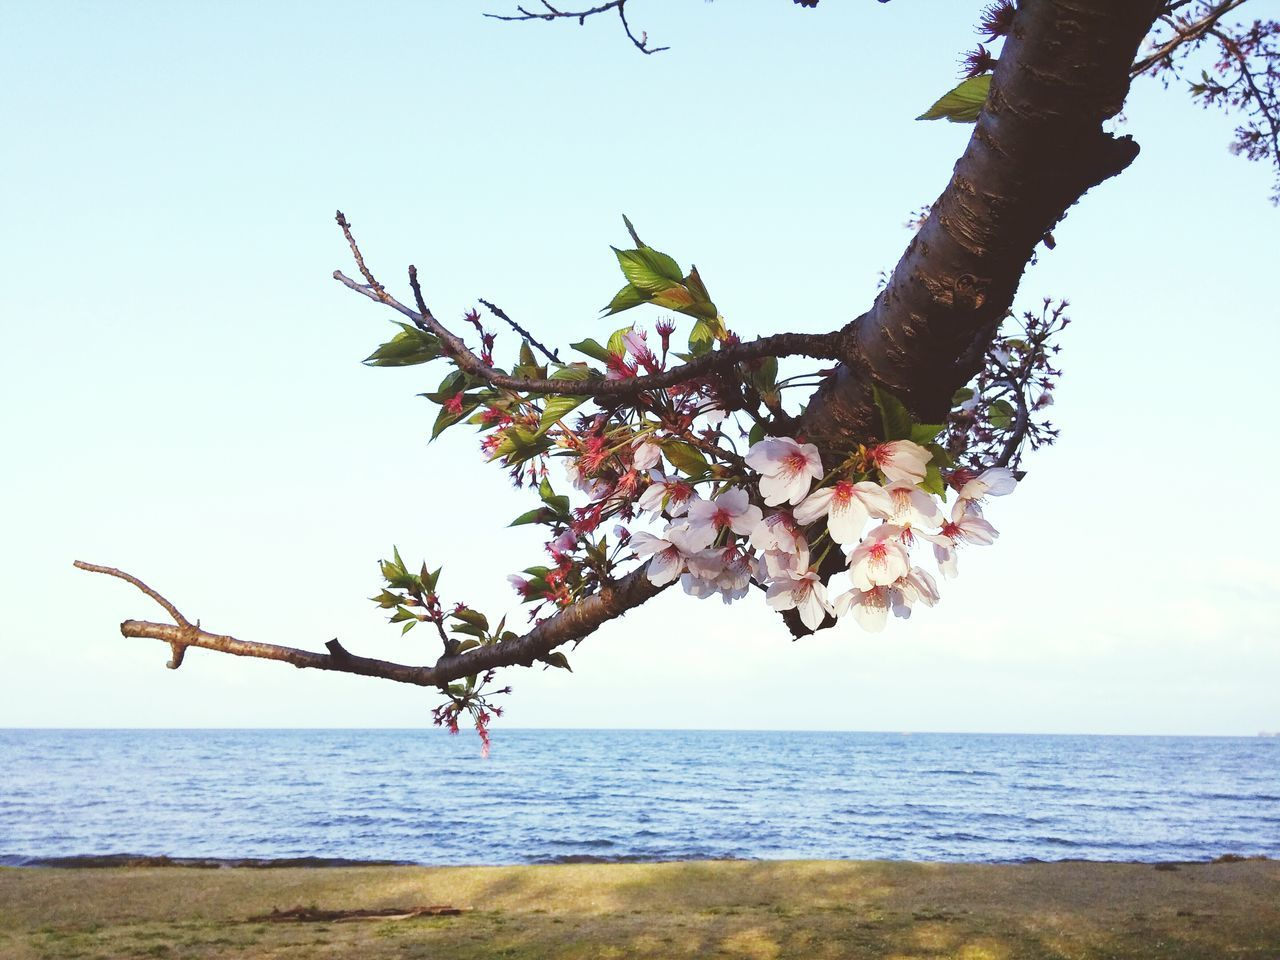 sea, horizon over water, nature, beauty in nature, water, tree, scenics, tranquility, sky, day, outdoors, clear sky, tranquil scene, branch, flower, no people, growth, beach, freshness